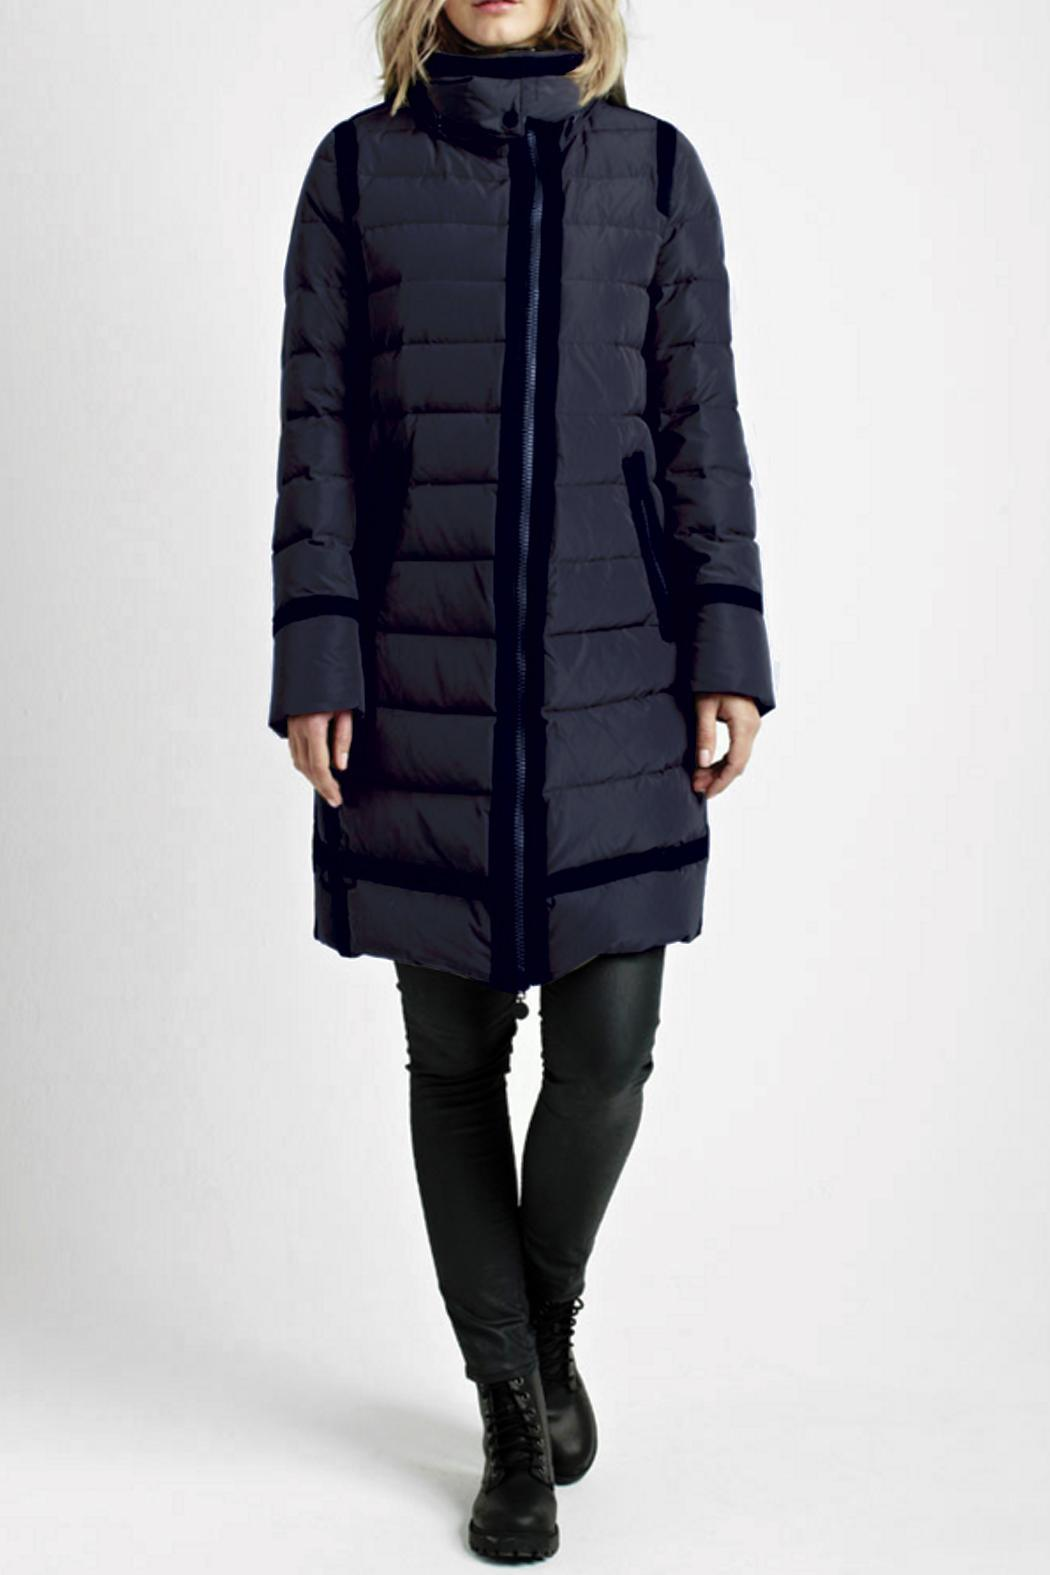 7 SEASONS Navy Down Coat from Aberdeen by ESCALE FRANCE — Shoptiques